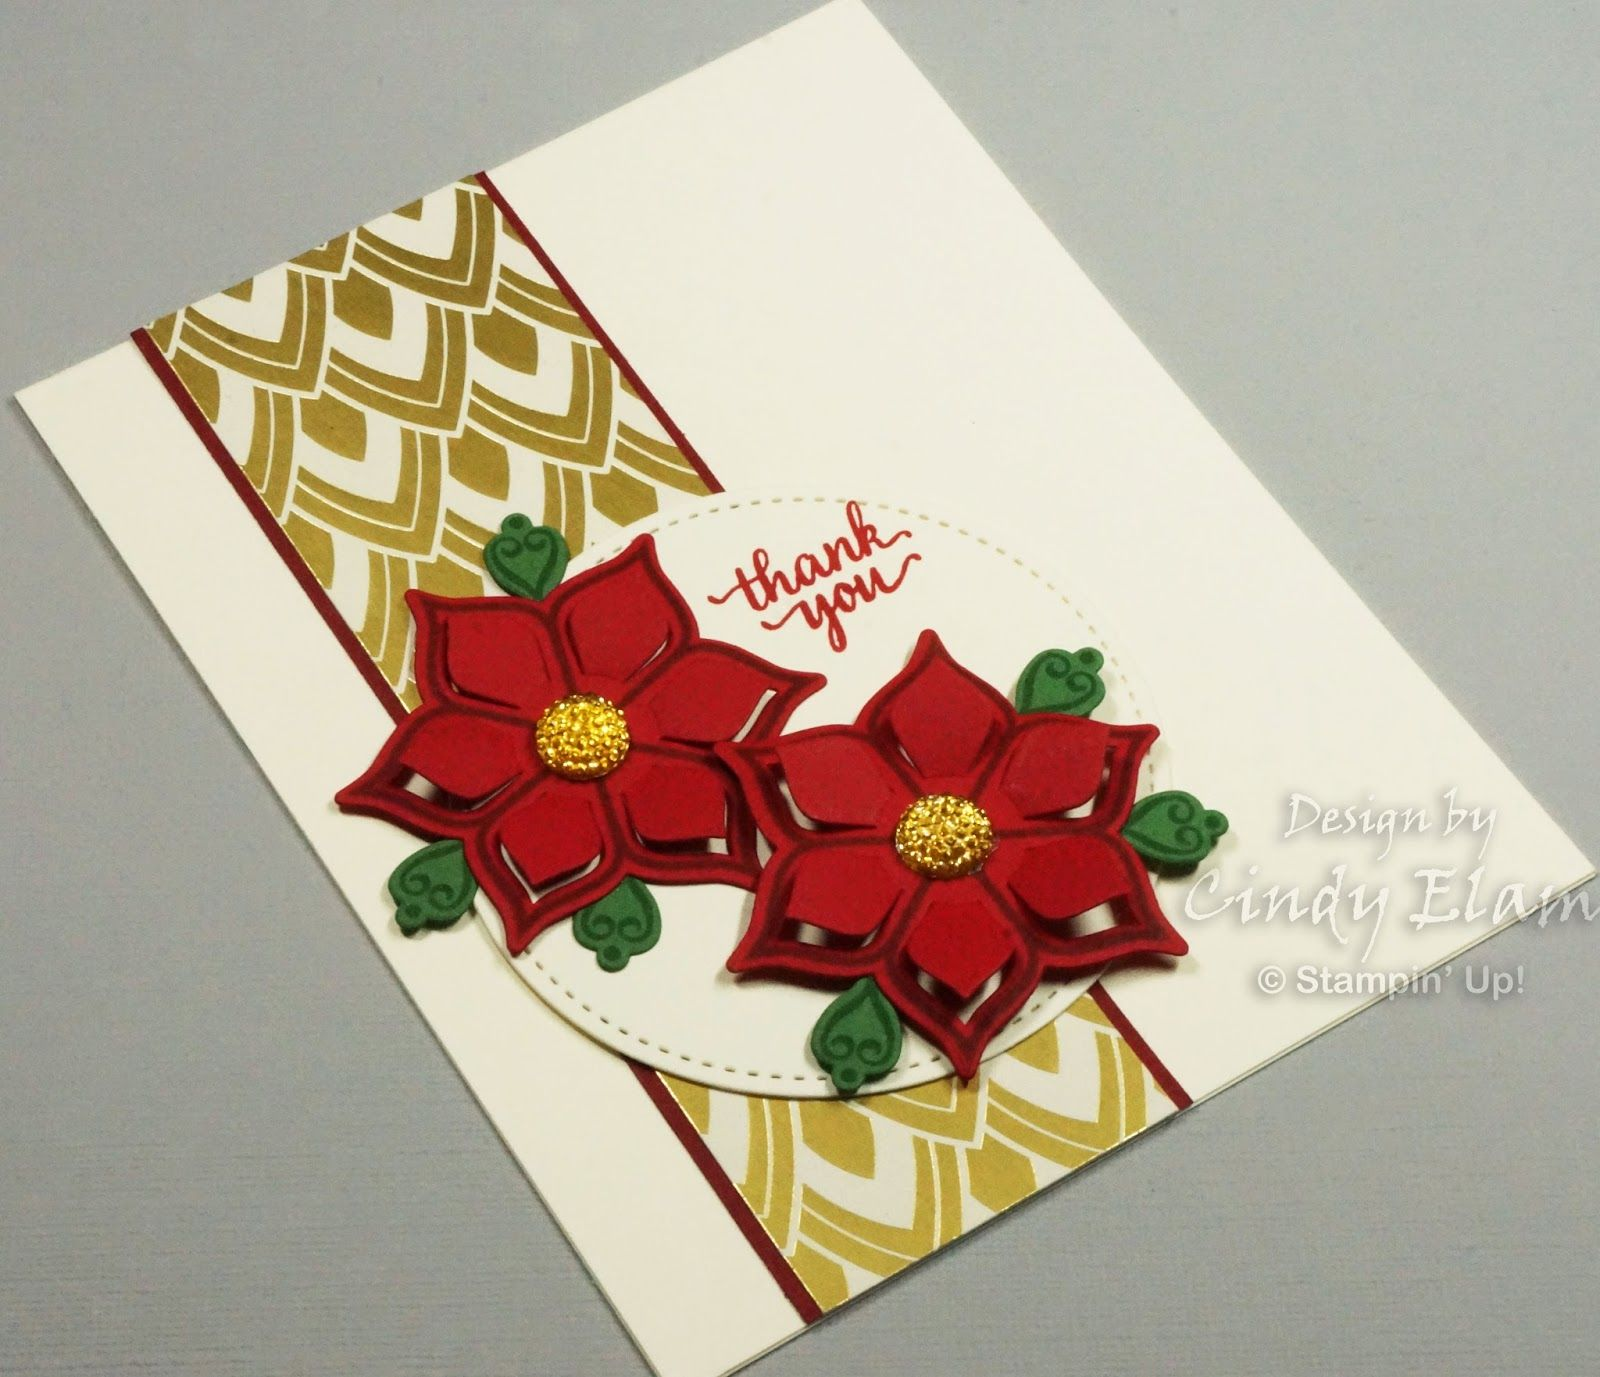 Stamp Review Crew - Eastern Beauty Review | Cheers card, Cards, Christmas cards